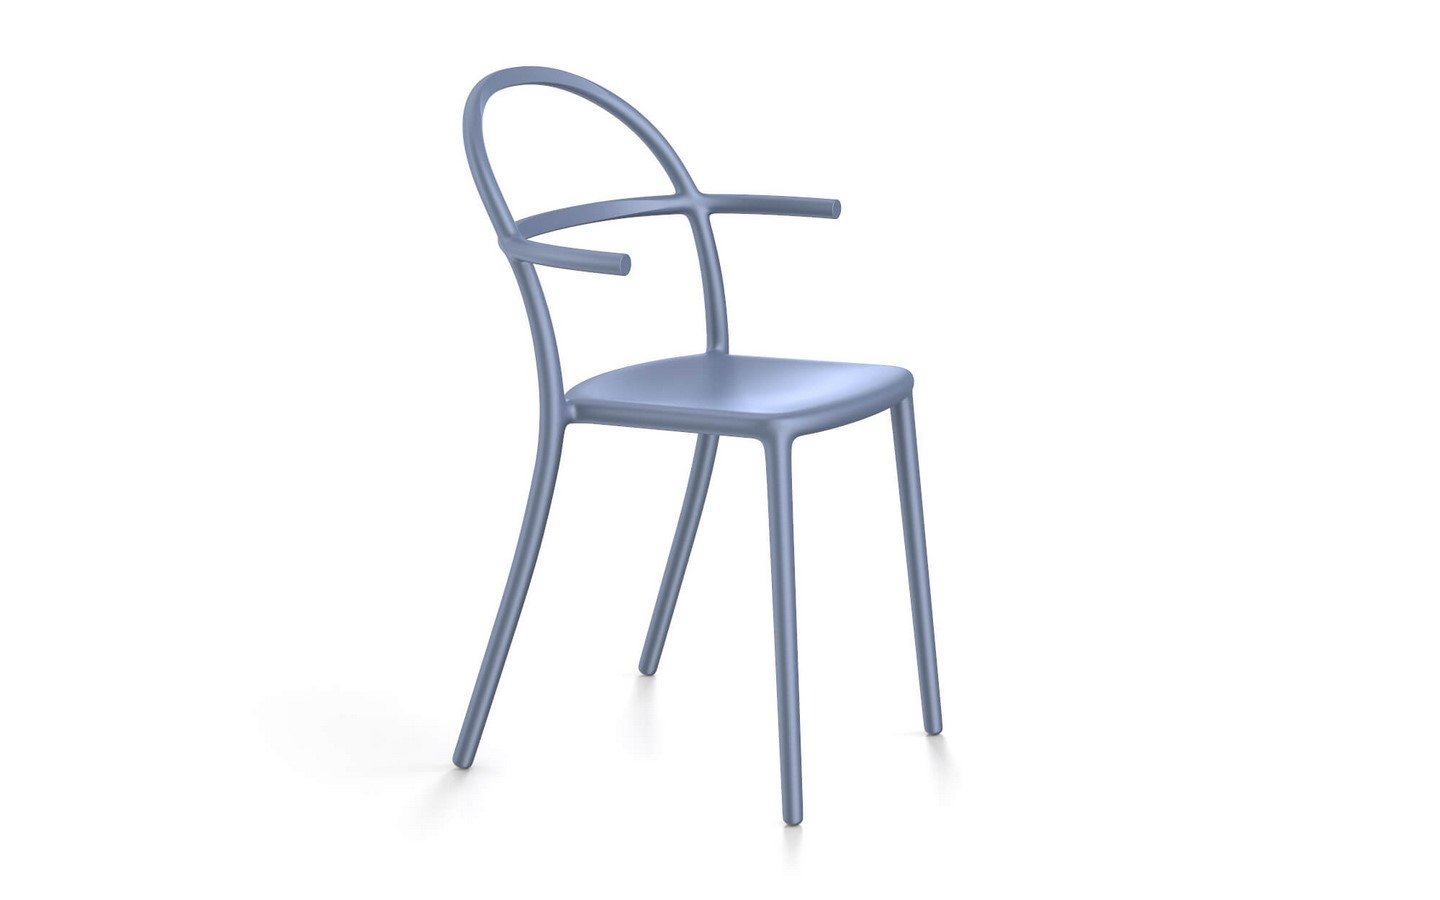 GENERIC.C, was designed by Philippe Starck with A. Maggiar for Kartell - Sheet1